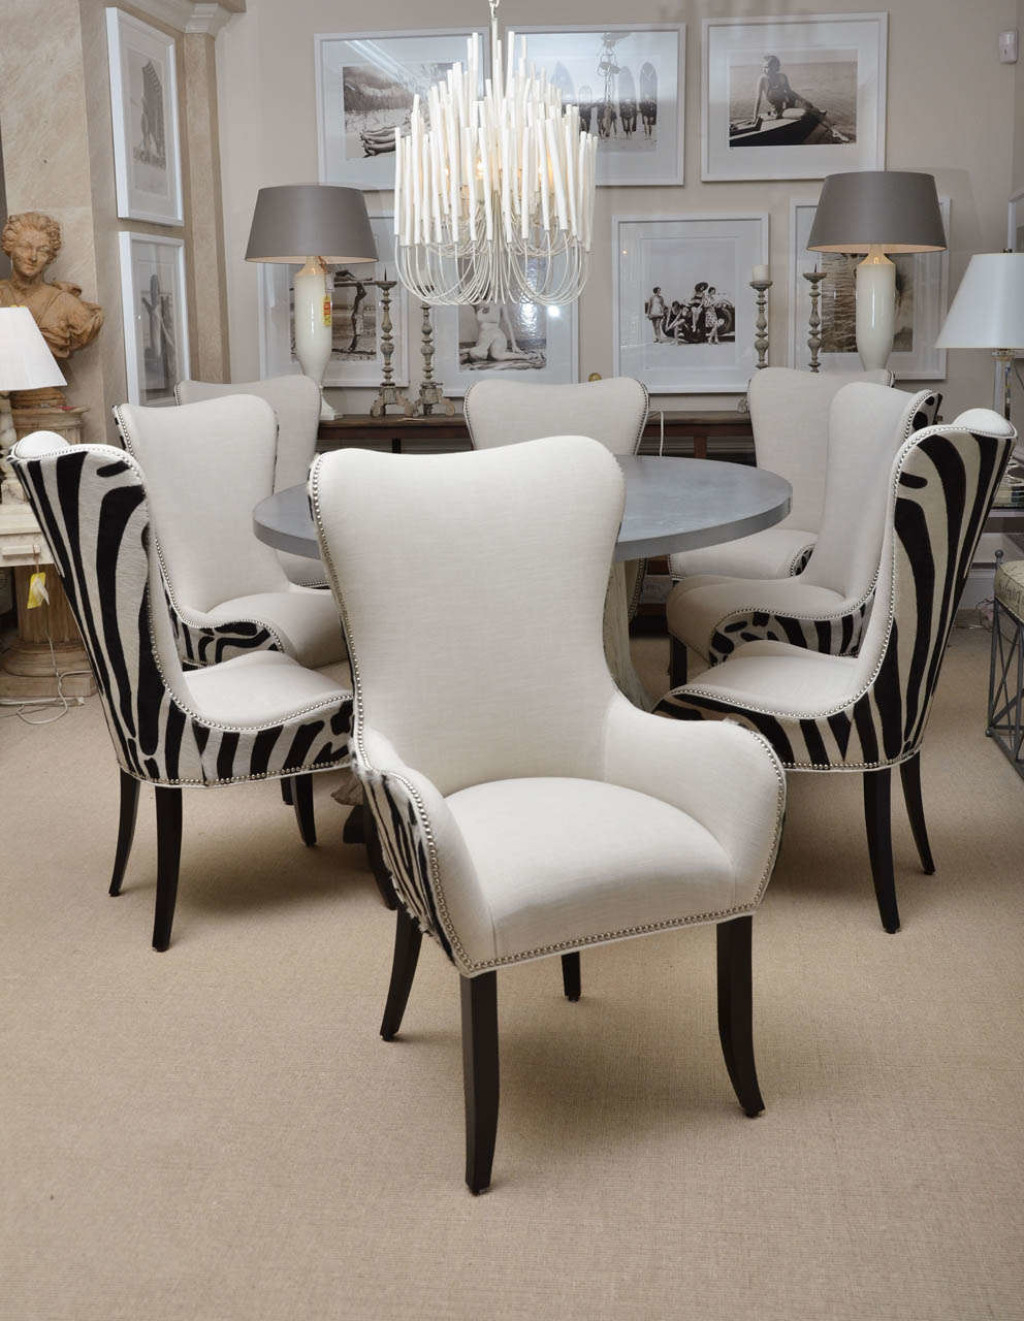 Zebra Dining Room Chairs Leopard Print Chair Covers Living Parson within Zebra Living Room Set